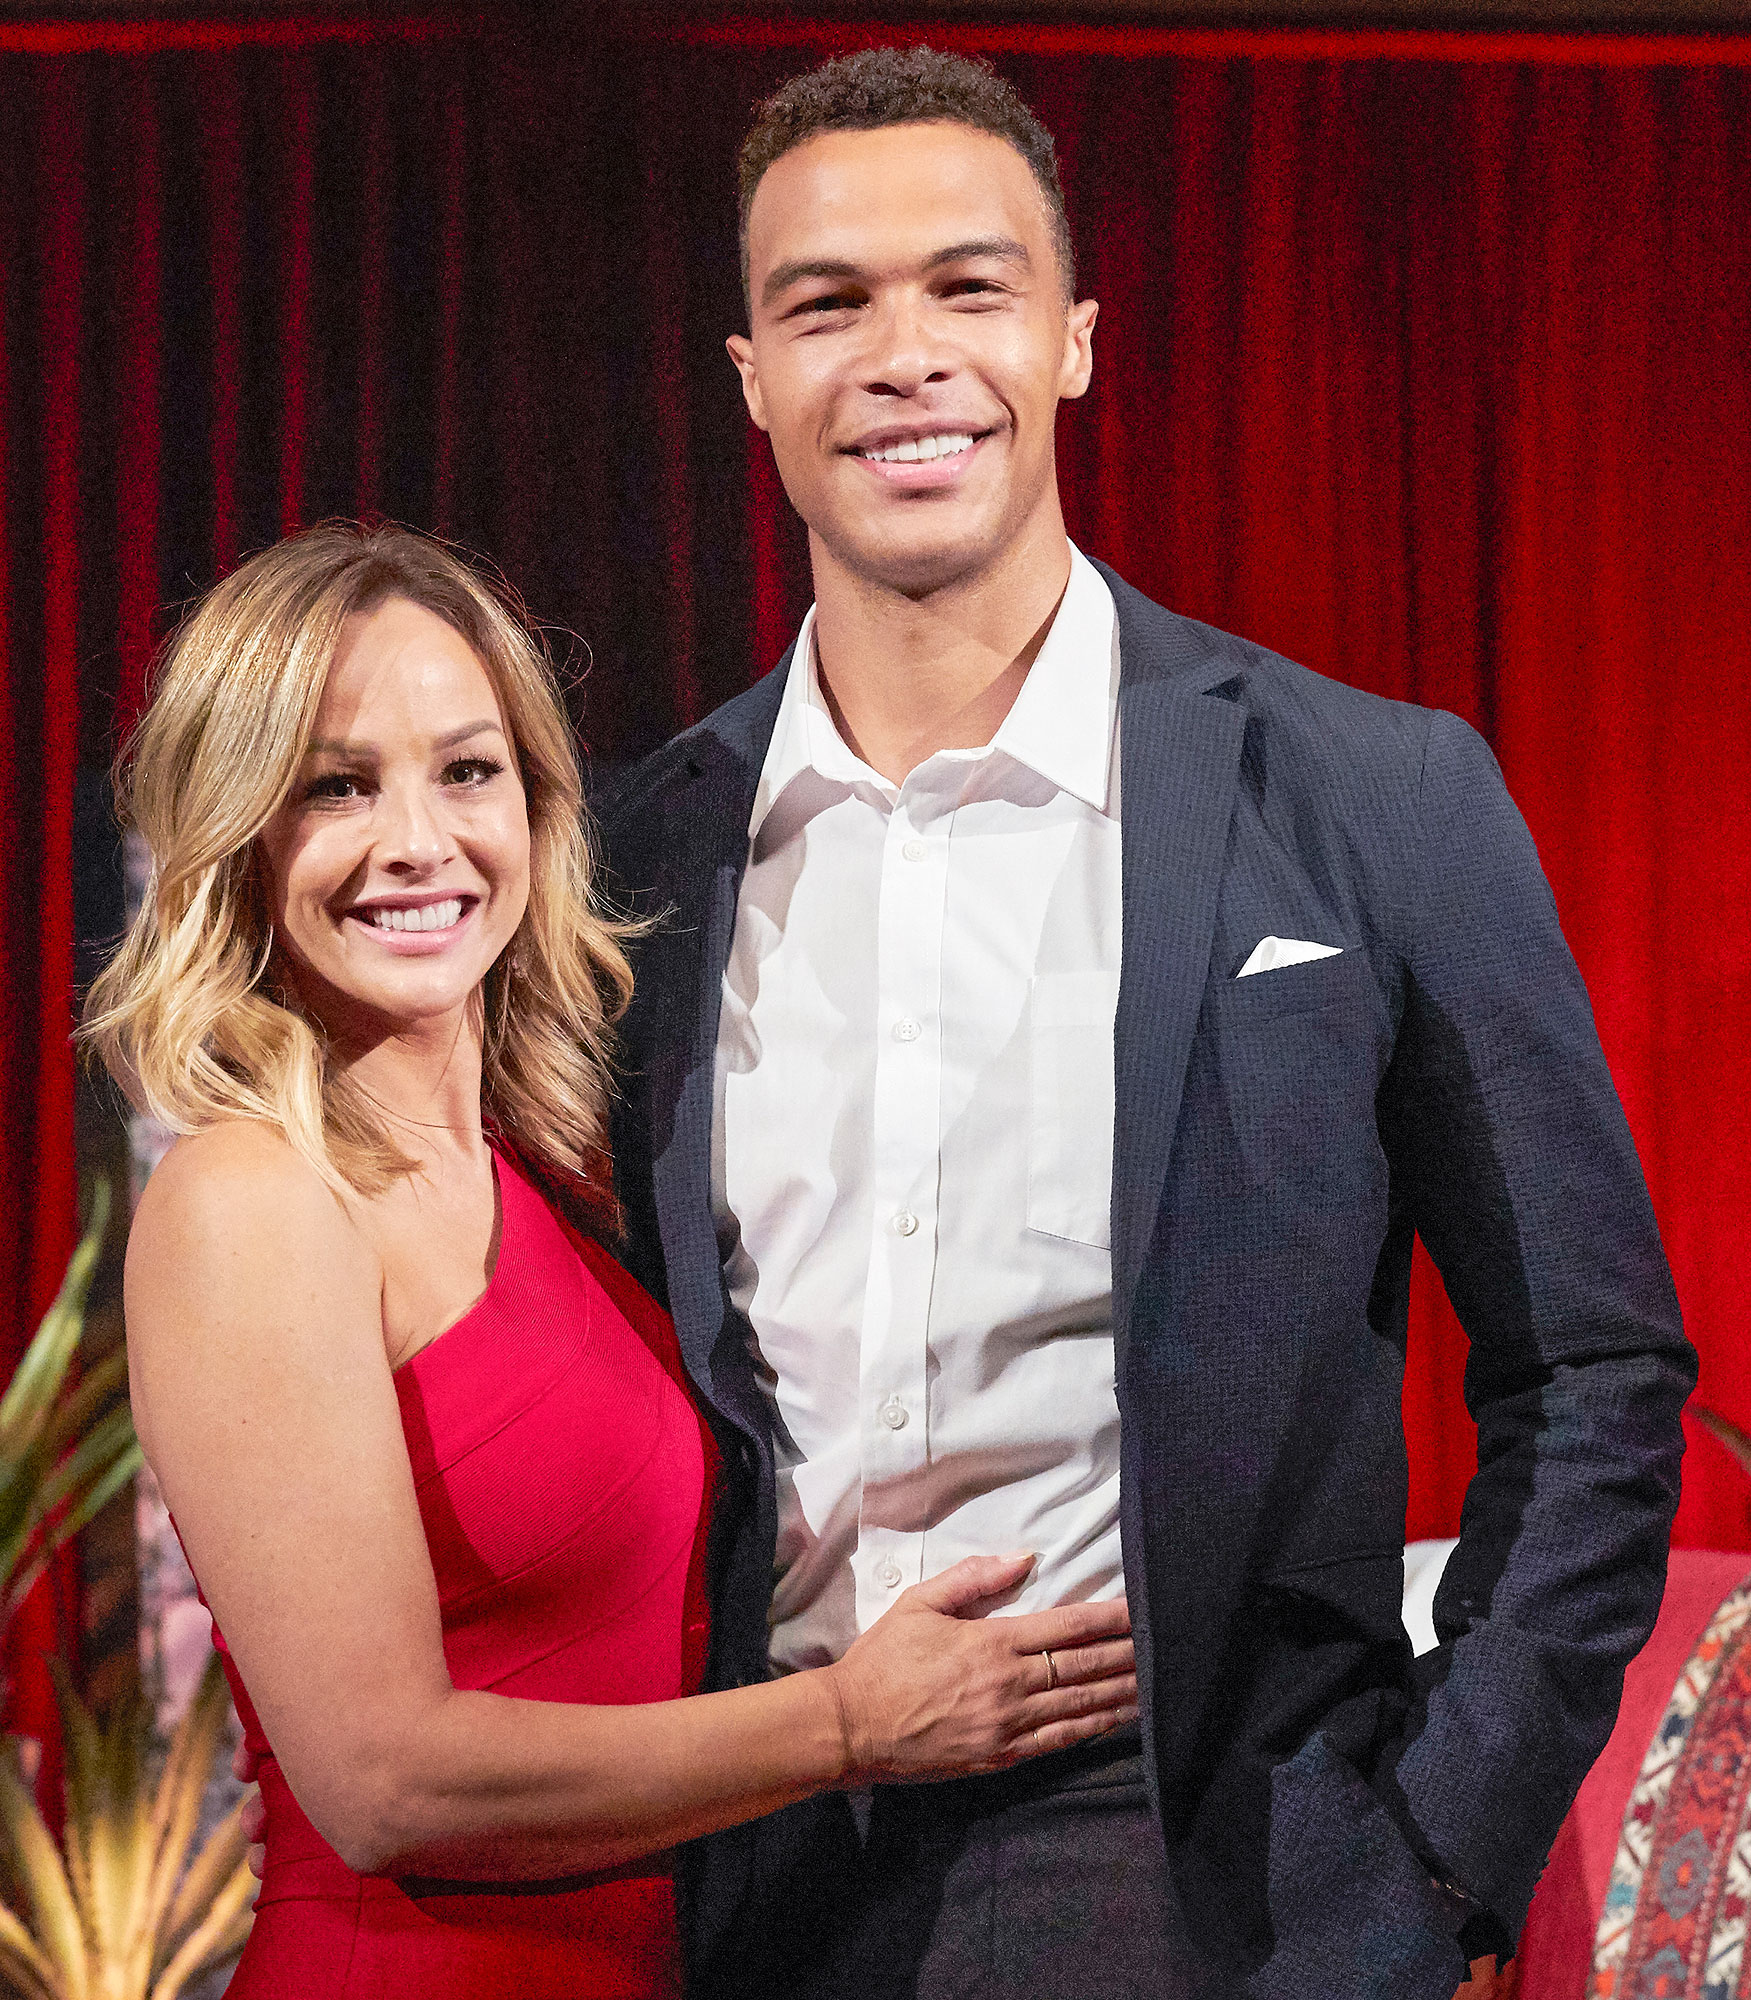 Clare Crawley and Dale Moss on The Bachelorette Clare Crawley Reveals Whats Bringing Her Happiness Following Crushing Dale Moss Split